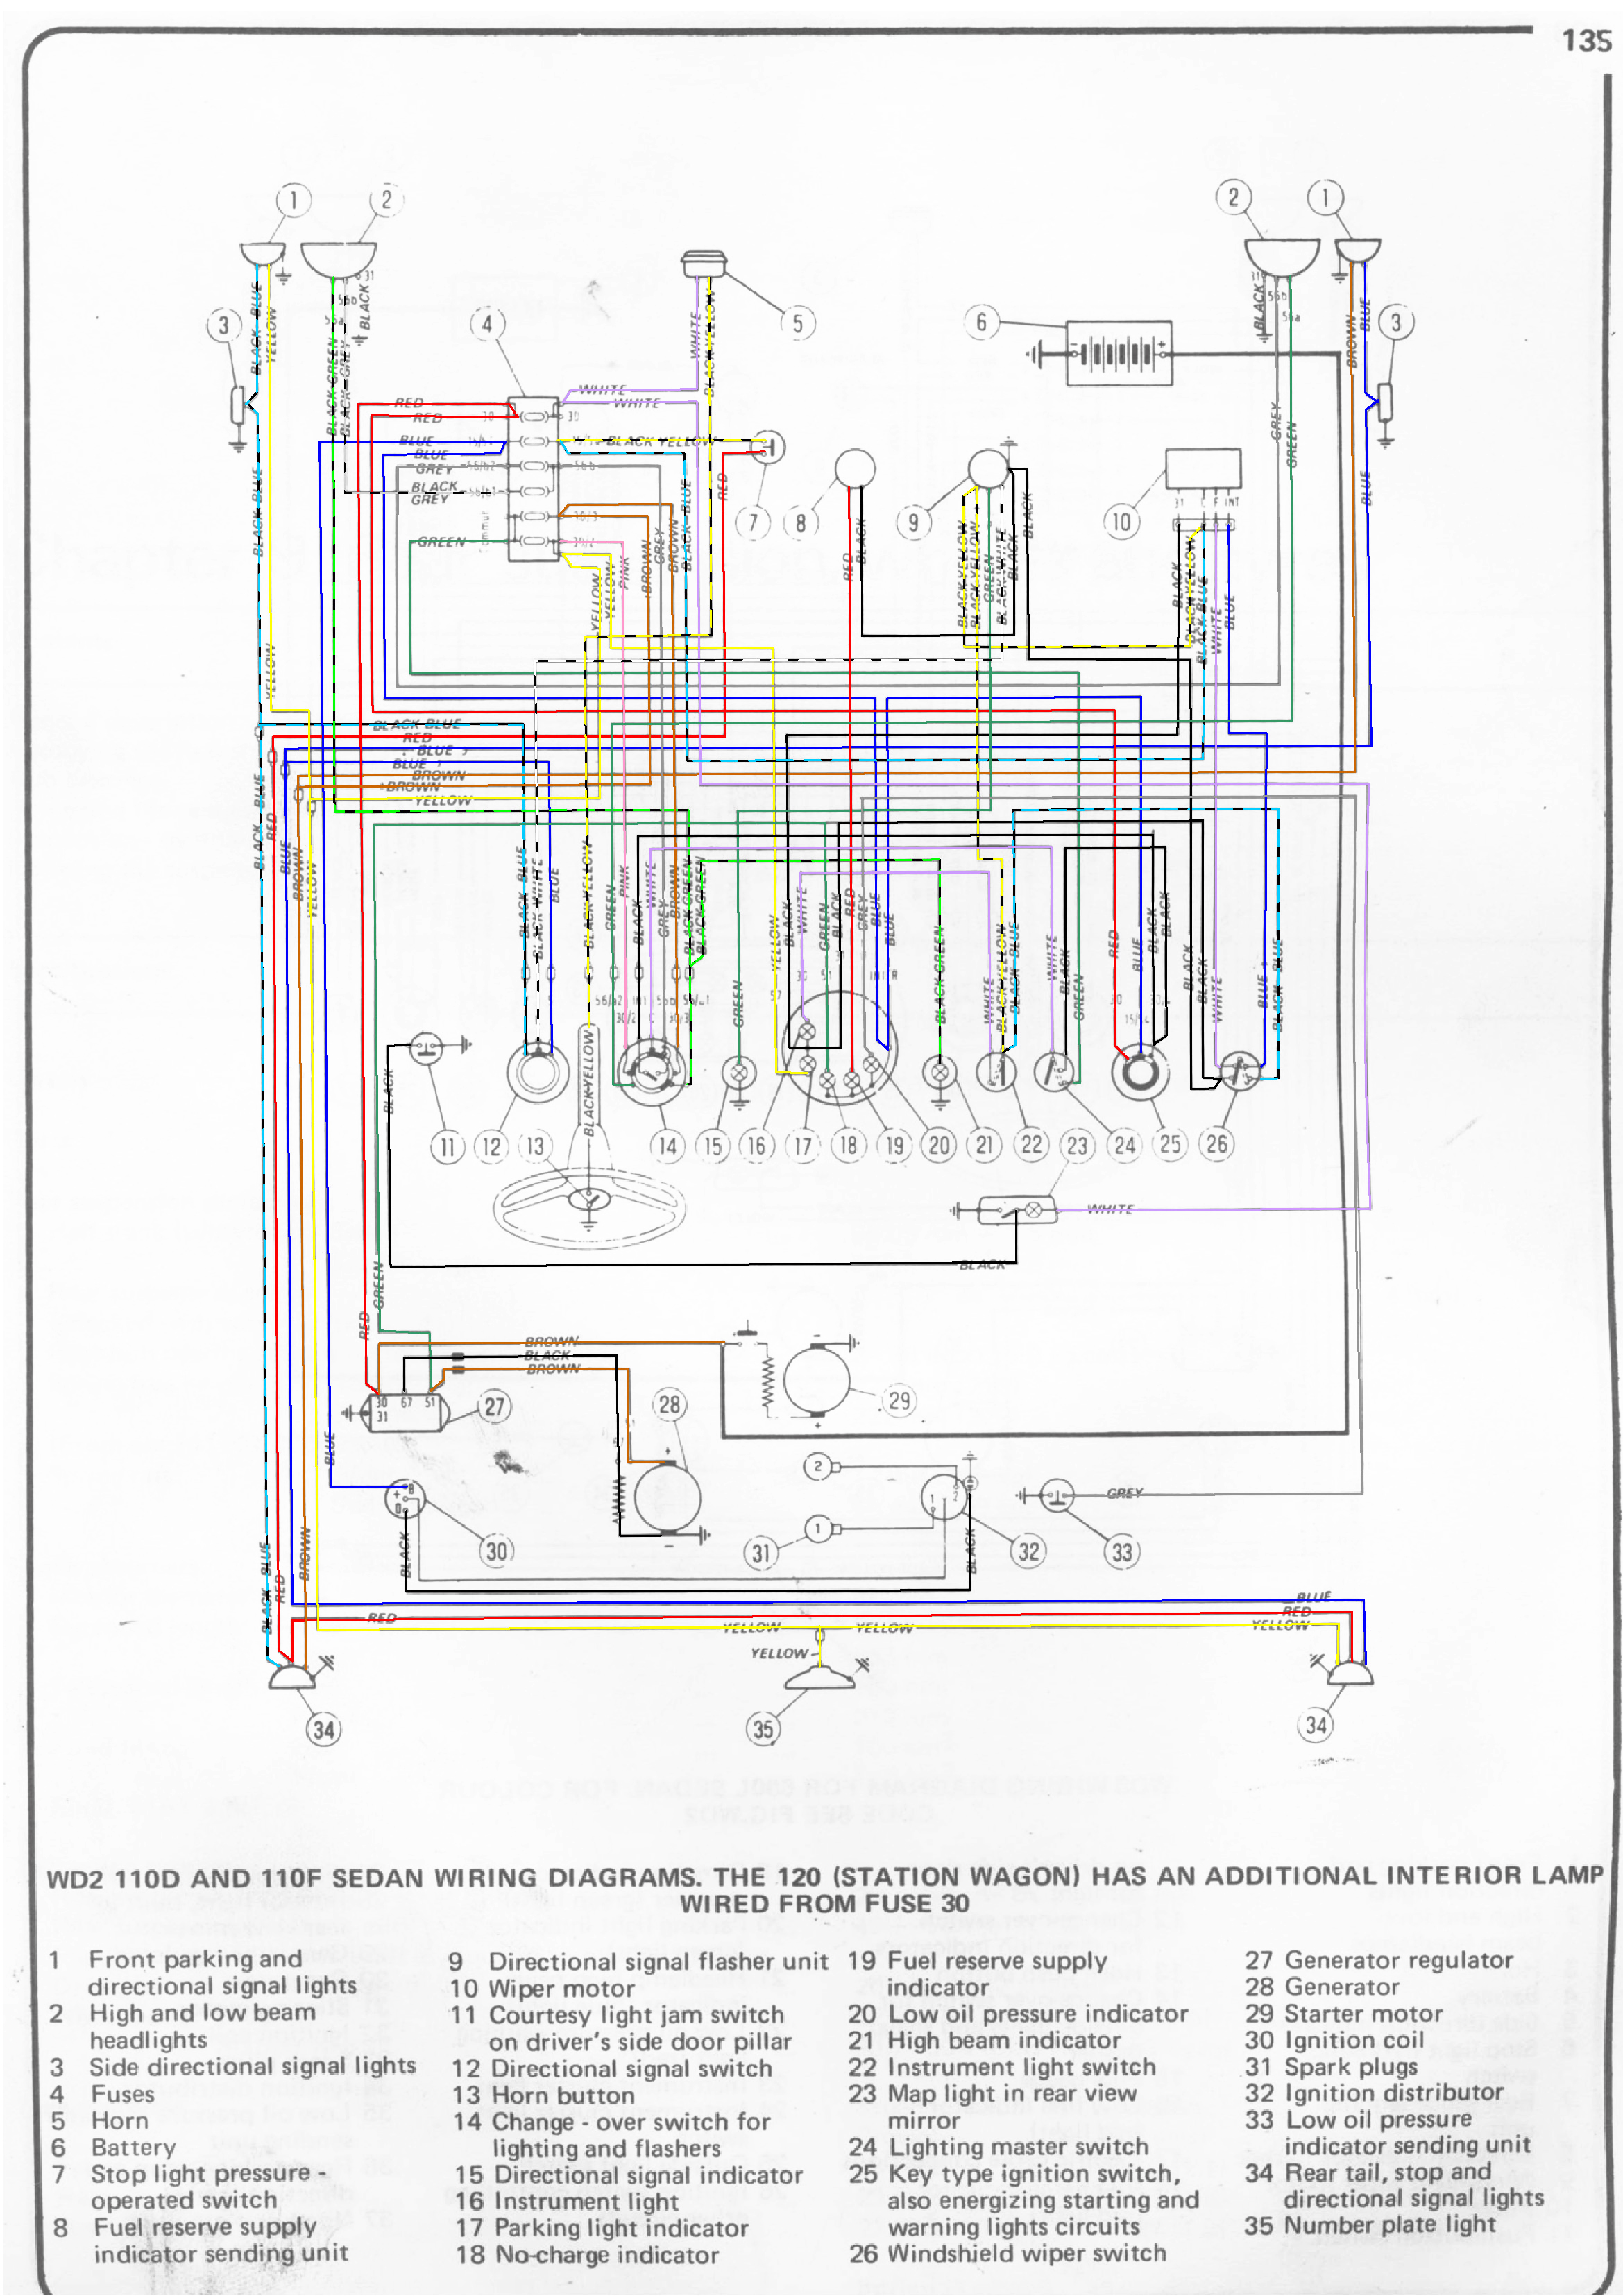 Fiat+500+Wiring+Diagram?t\\\=1508407624 2012 fiat 500 wiring diagram 2012 fiat 500 wiring diagram \u2022 wiring fiat grande punto wiring diagram pdf at creativeand.co